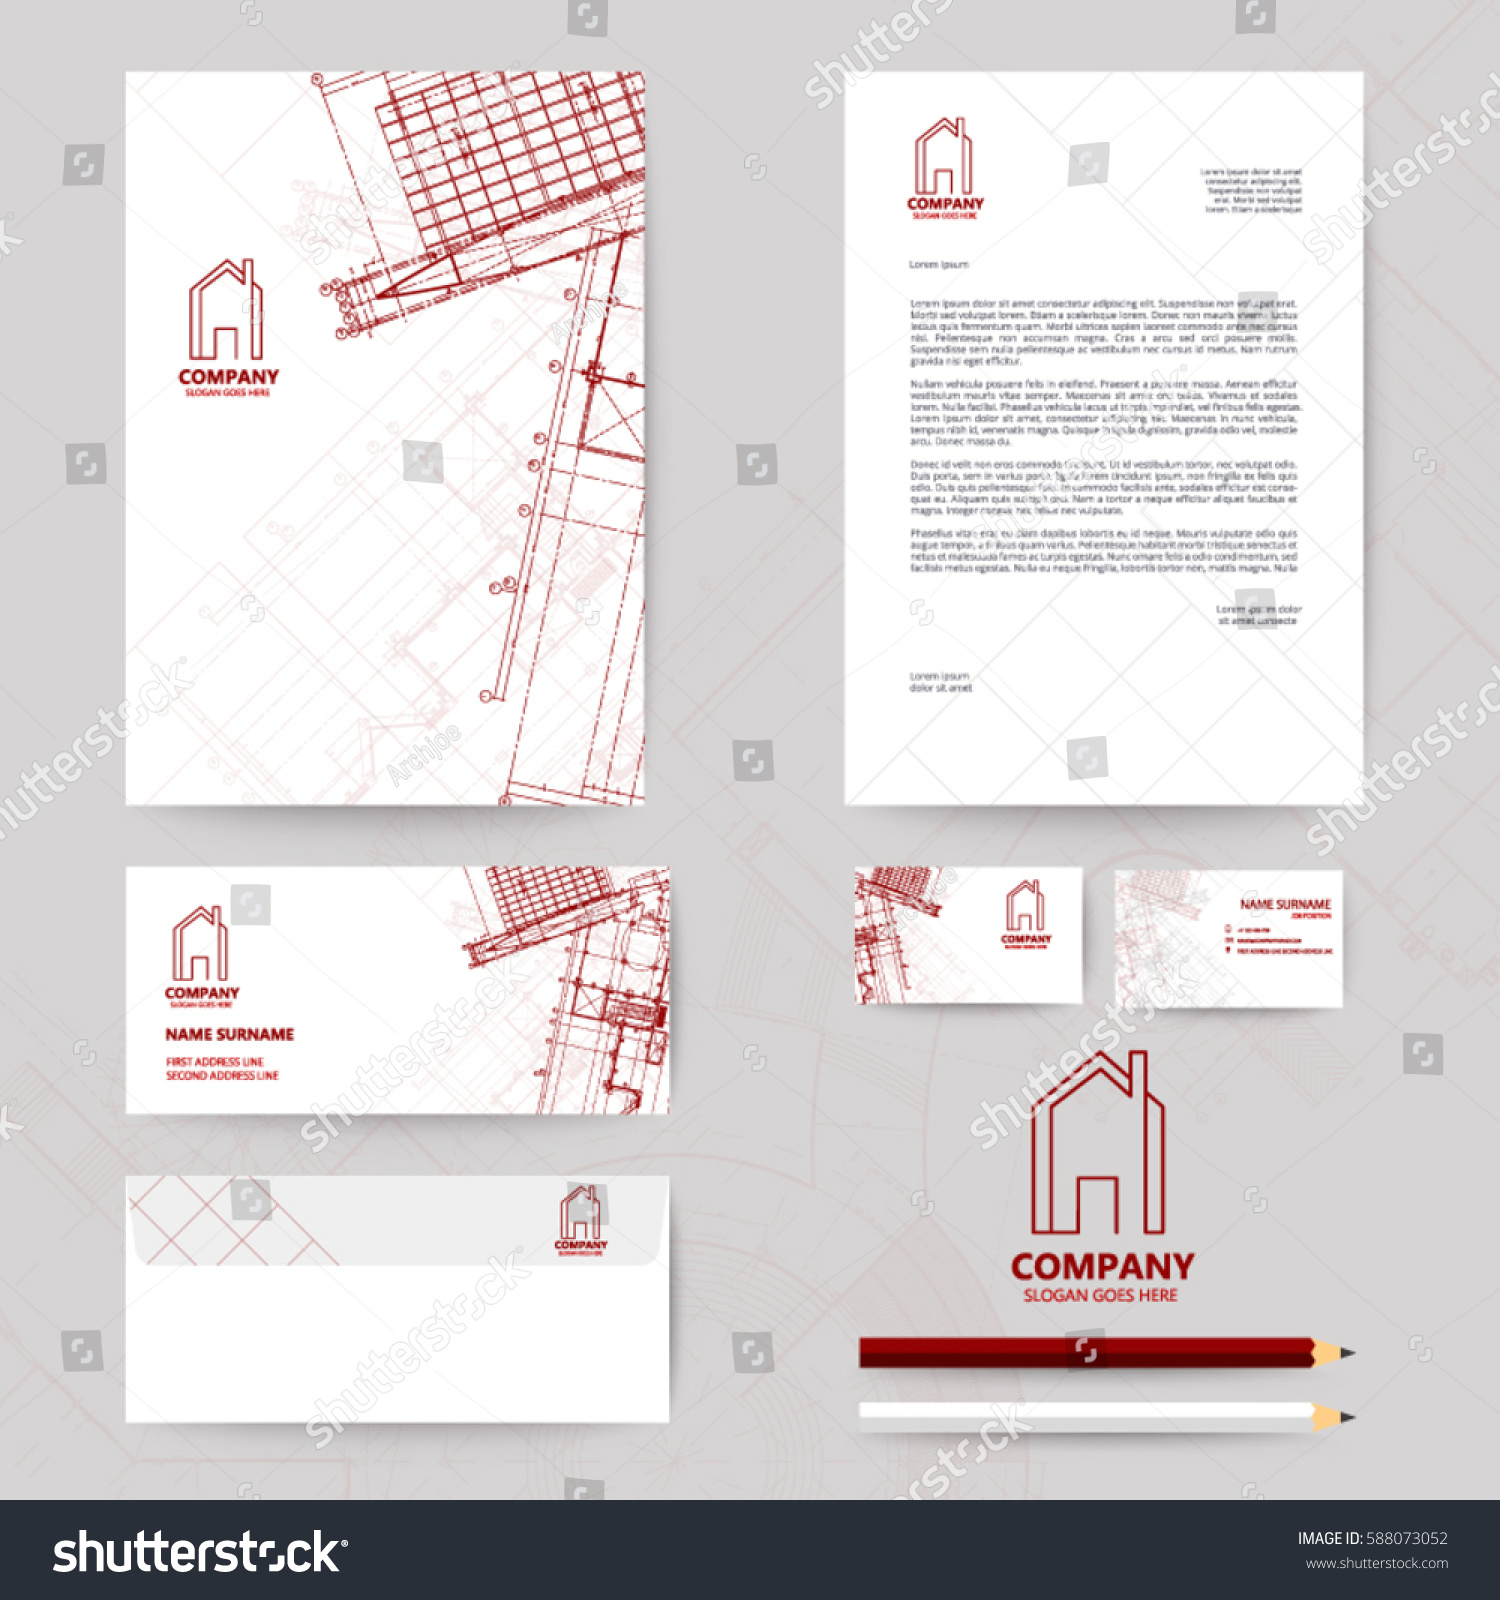 Corporate identity template design blueprint background vectores en corporate identity template design with blueprint background business realestate malvernweather Gallery